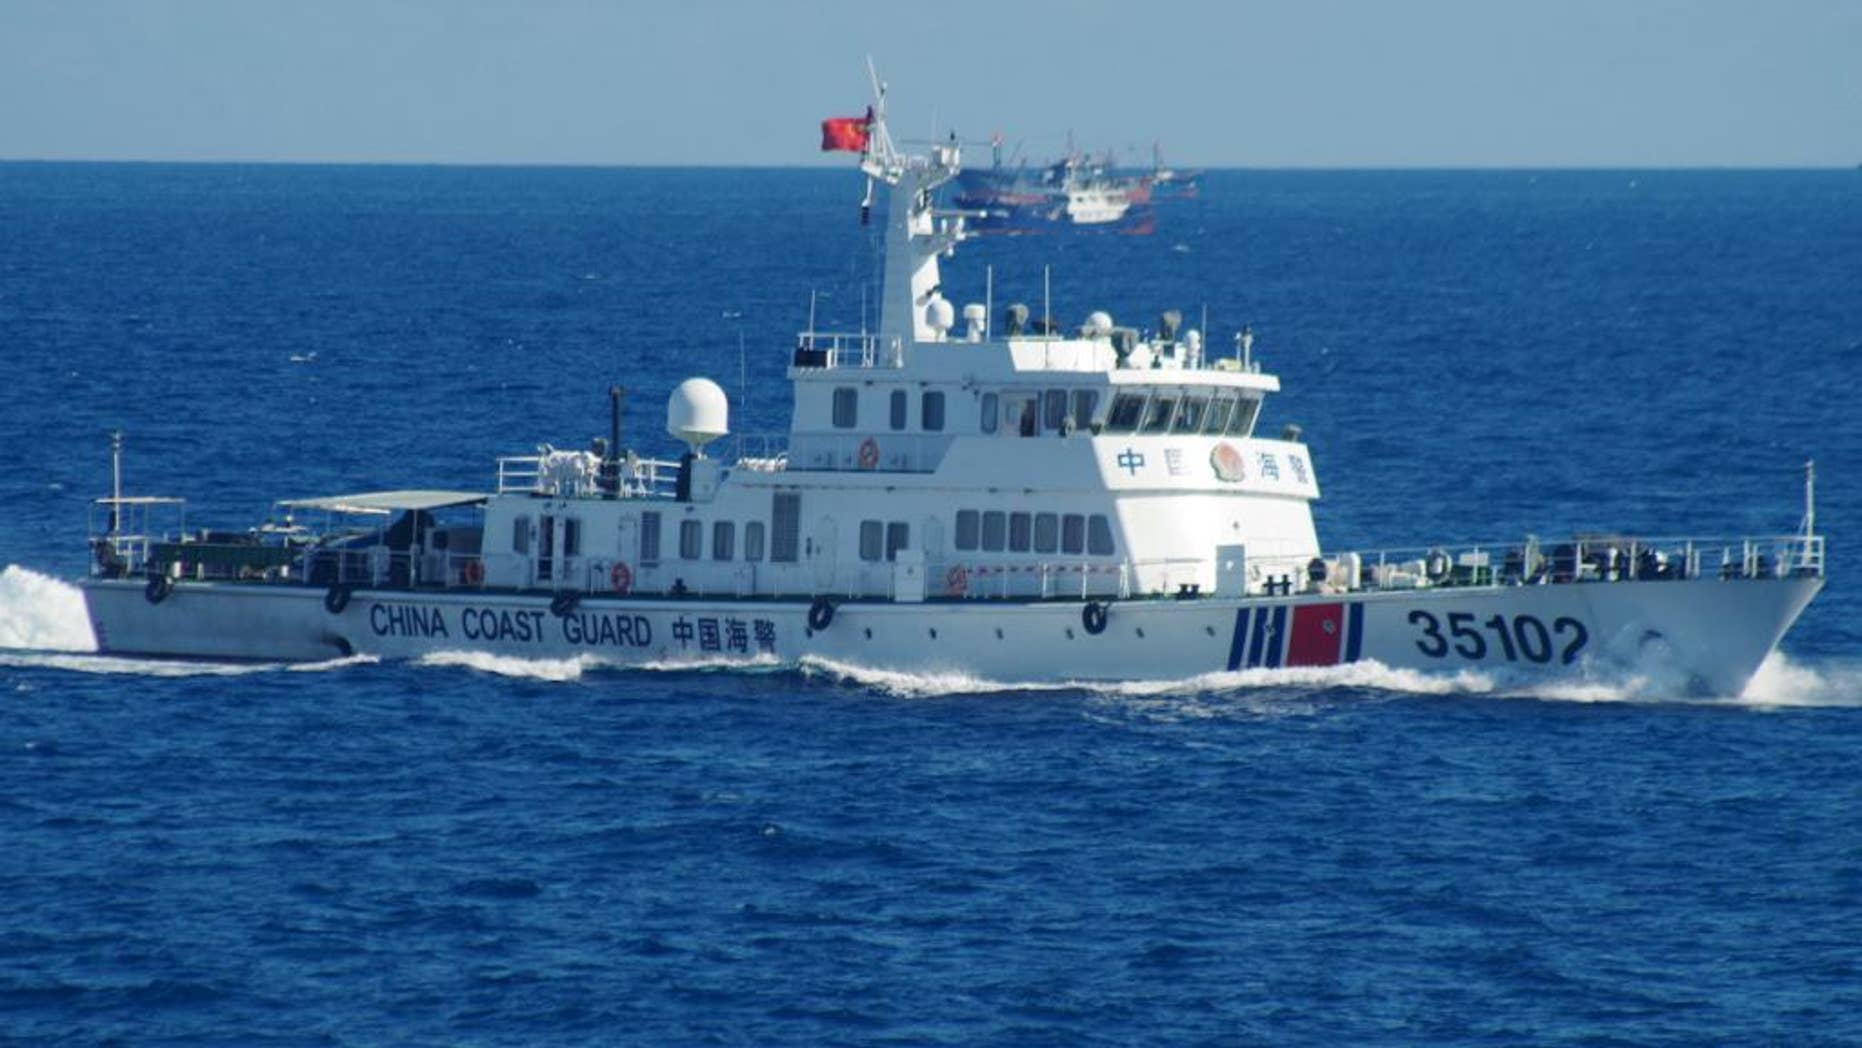 In this photo released by the 11th Regional Coast Guard Headquarters of Japan, a Chinese coast guard vessel sails near disputed East China Sea islands Saturday, Aug. 6, 2016. Japan's Foreign Ministry said in a statement it filed the protest after Japan's coast guard spotted the vessels Saturday along with a fleet of 230 Chinese fishing boats swarming around the Japanese-controlled Senkaku Islands. China also claims the islands, calling them the Diaoyu. (11th Regional Coast Guard Headquarters via AP)